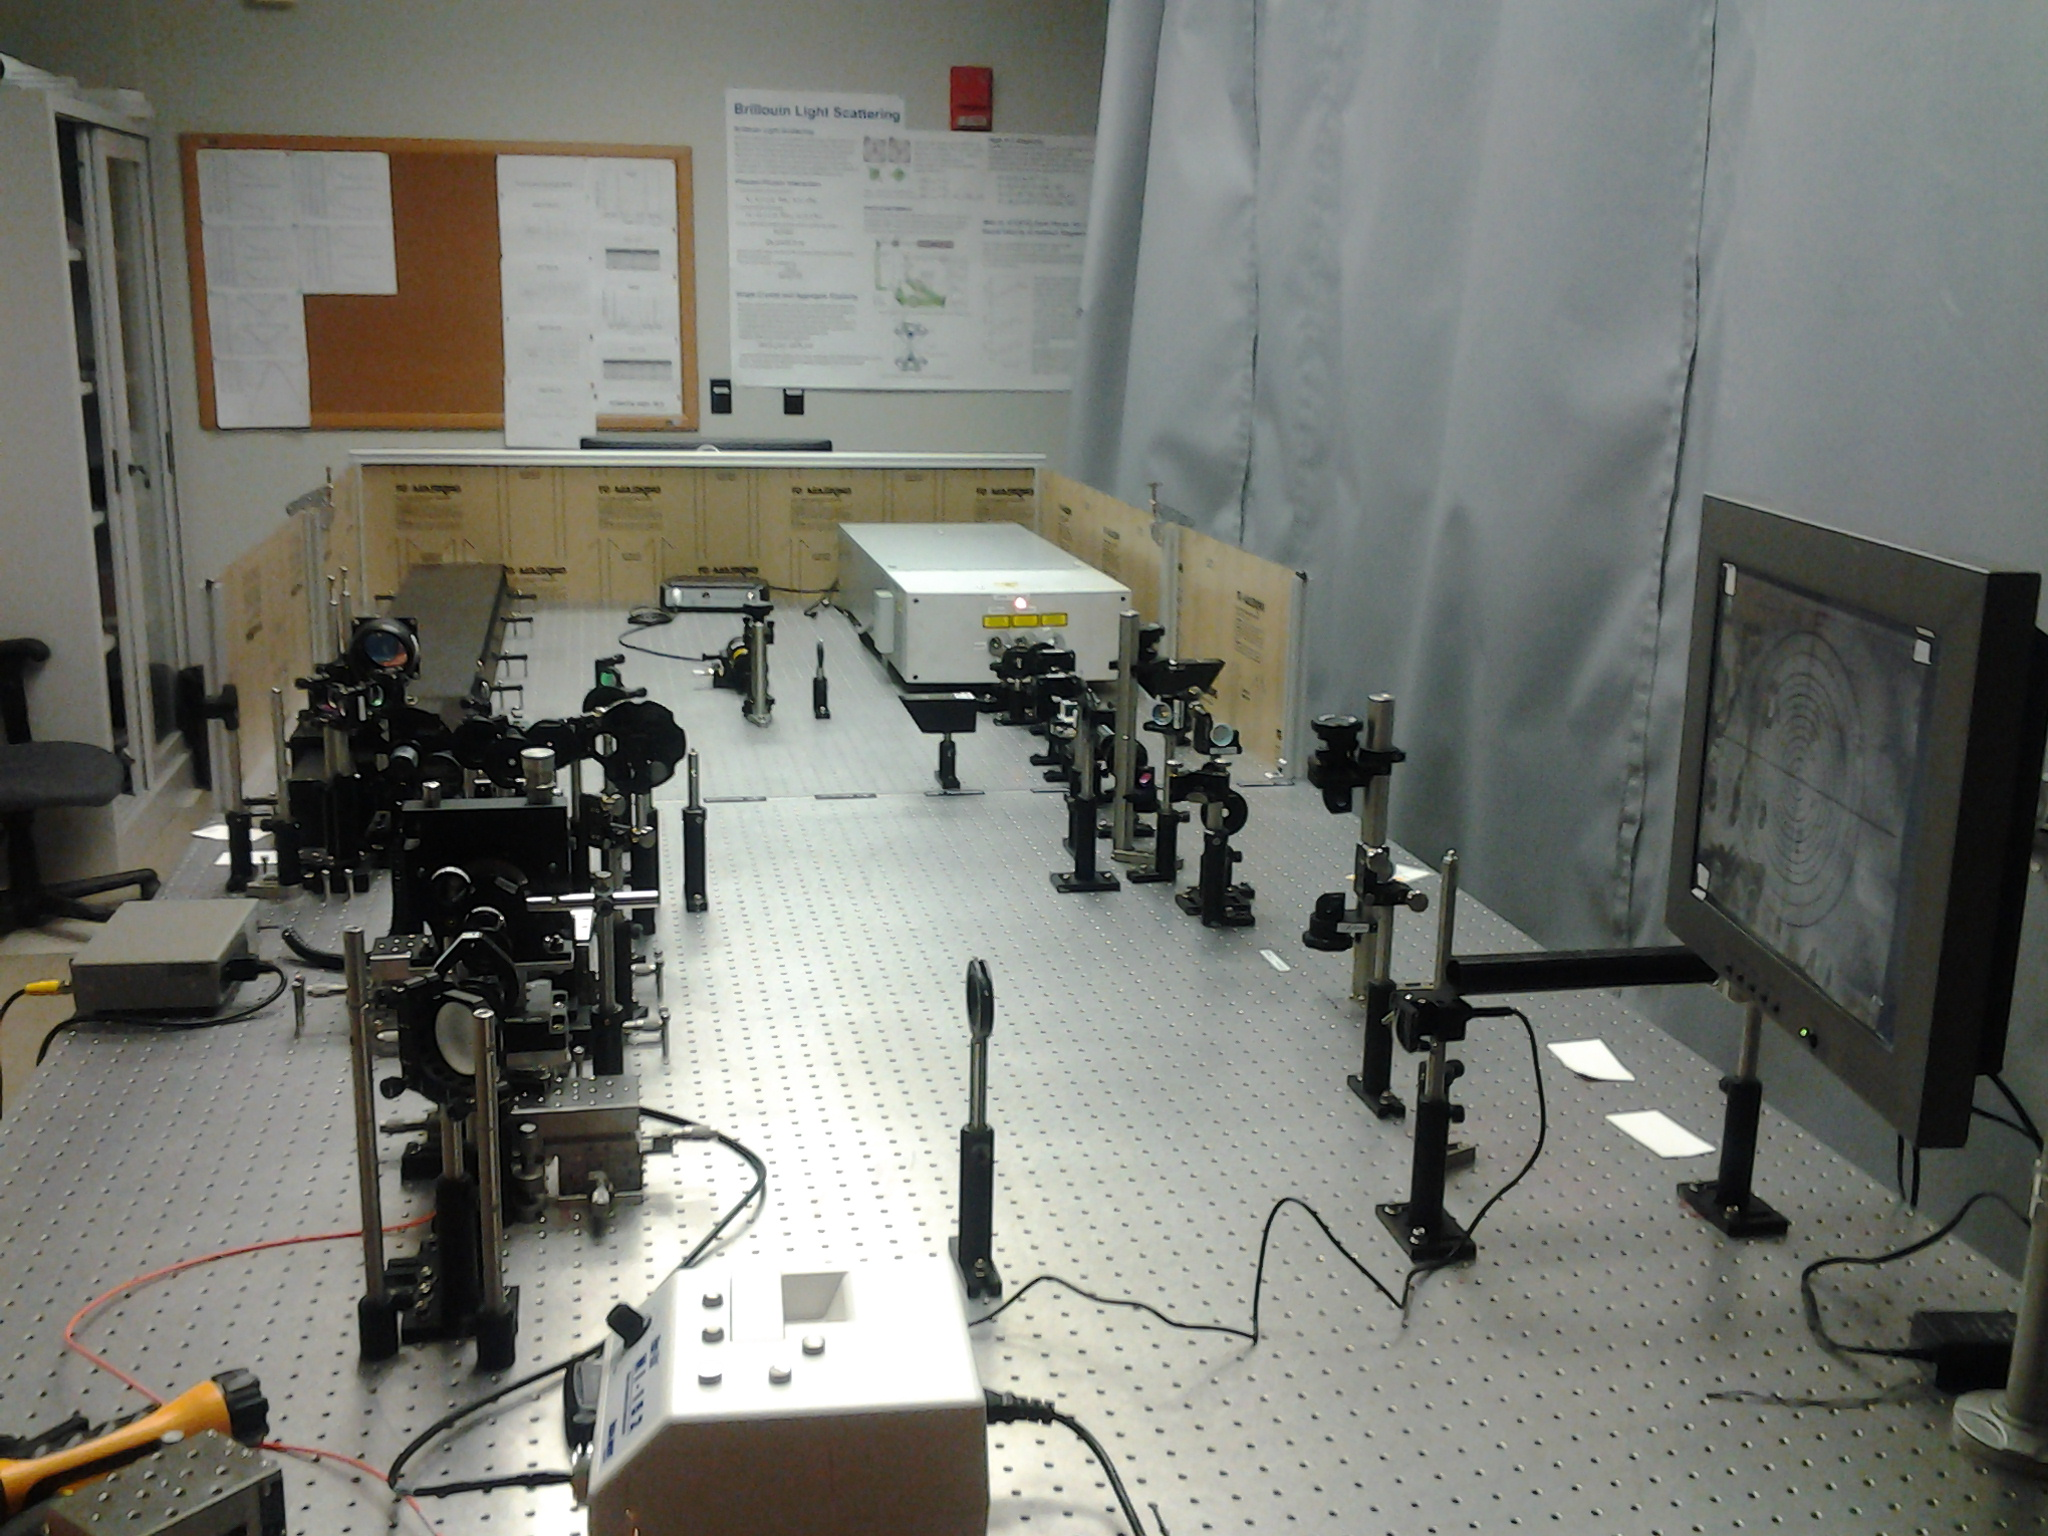 Coherennt Talisker Laser and Aerotech Stage on 12x5' optical table